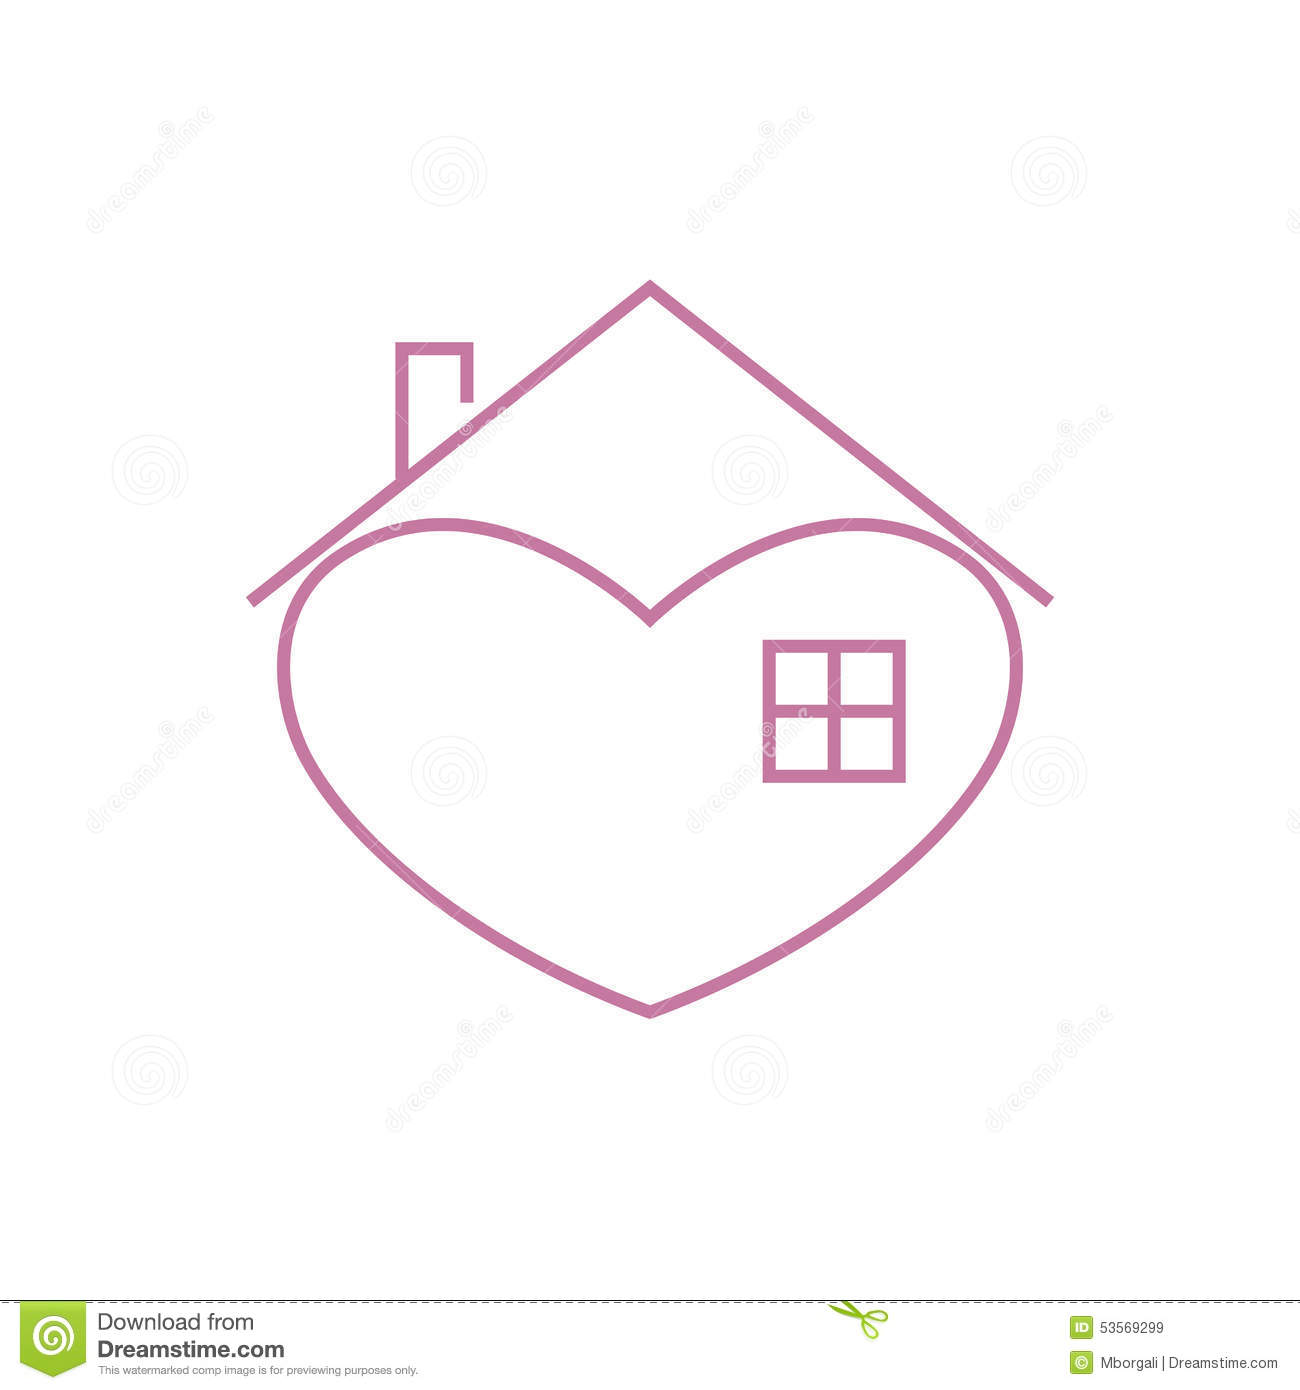 Stock Illustration House Logo Template Pink Shape Heart Big Window Isolated White Background New Concept Image53569299 on Ordinary House Simple Plans